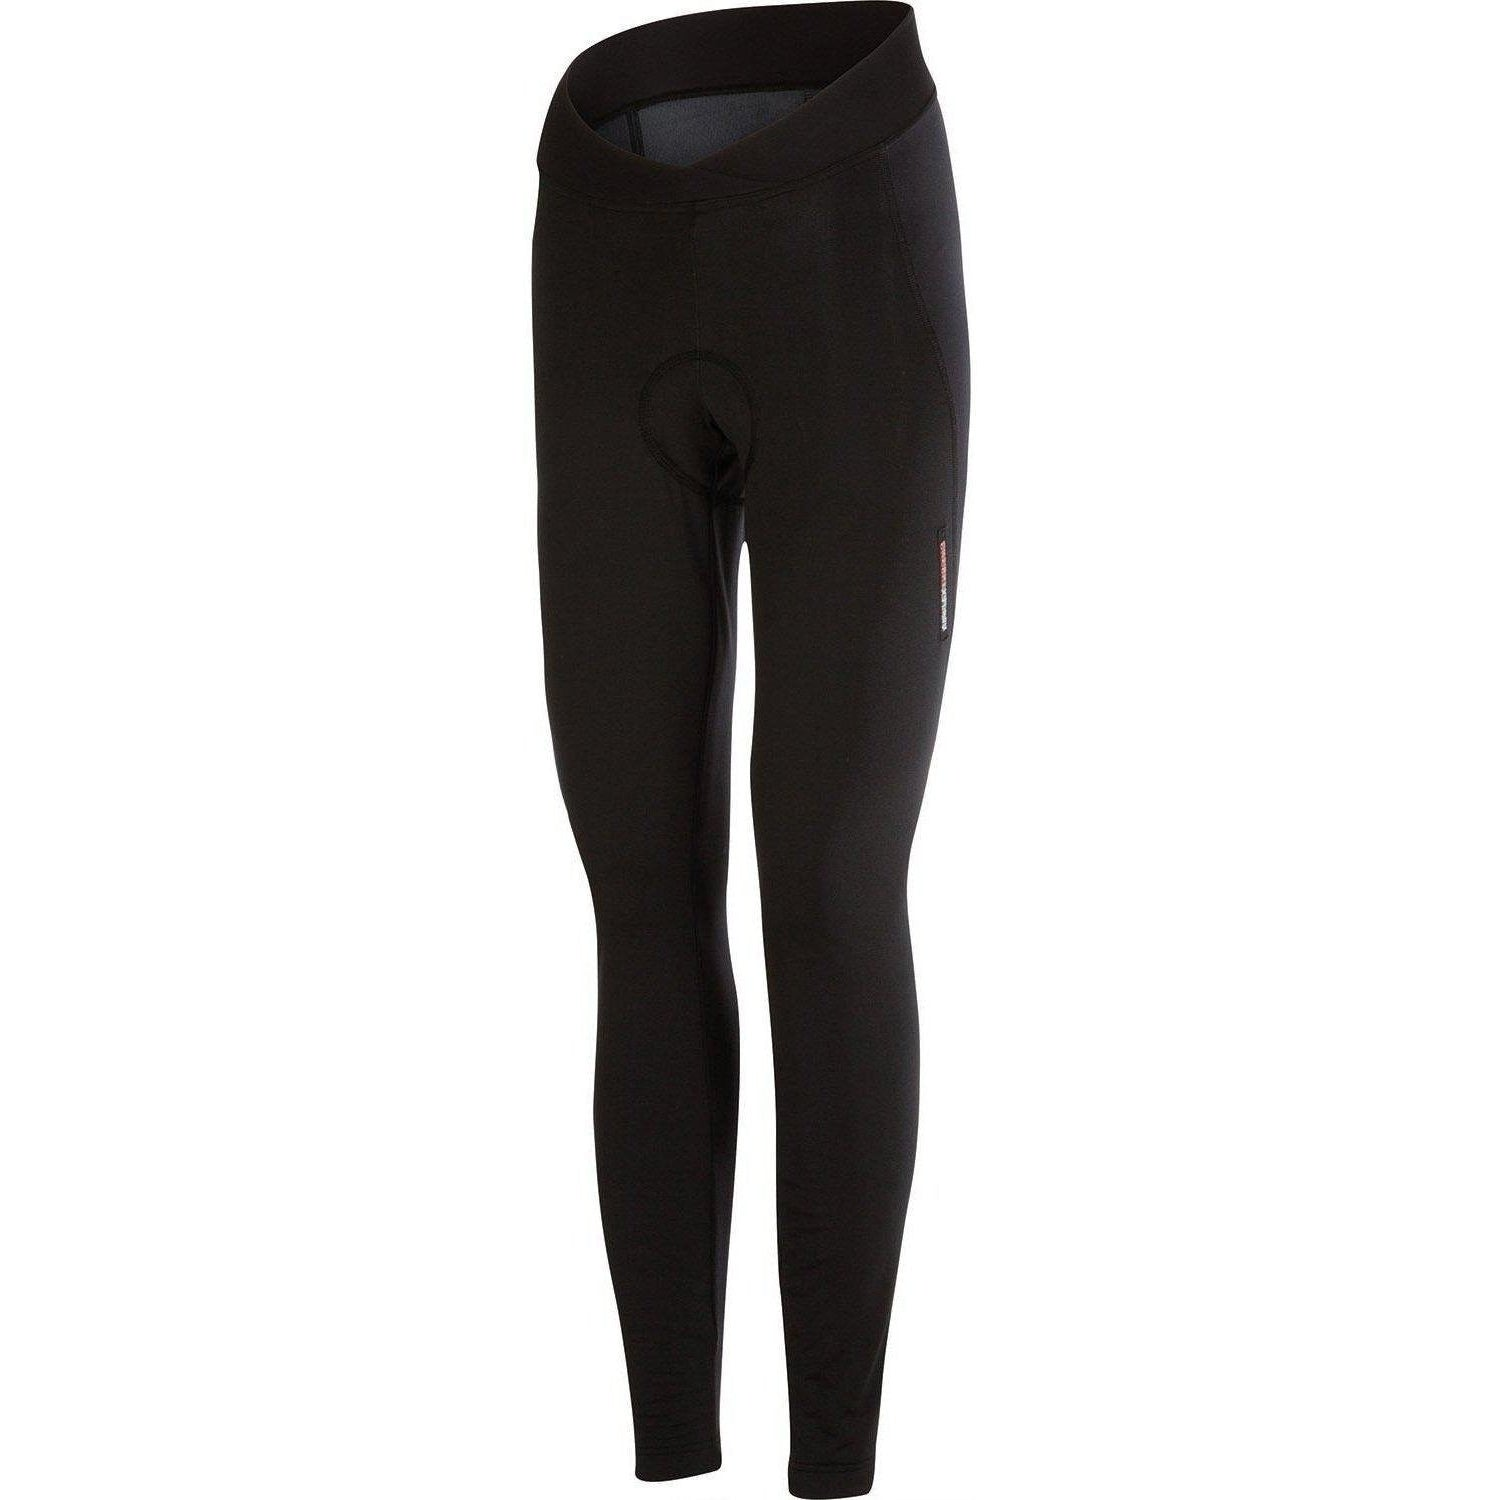 Castelli-Castelli Meno Wind Women's Tights-Black-XS-CS155660101-saddleback-elite-performance-cycling